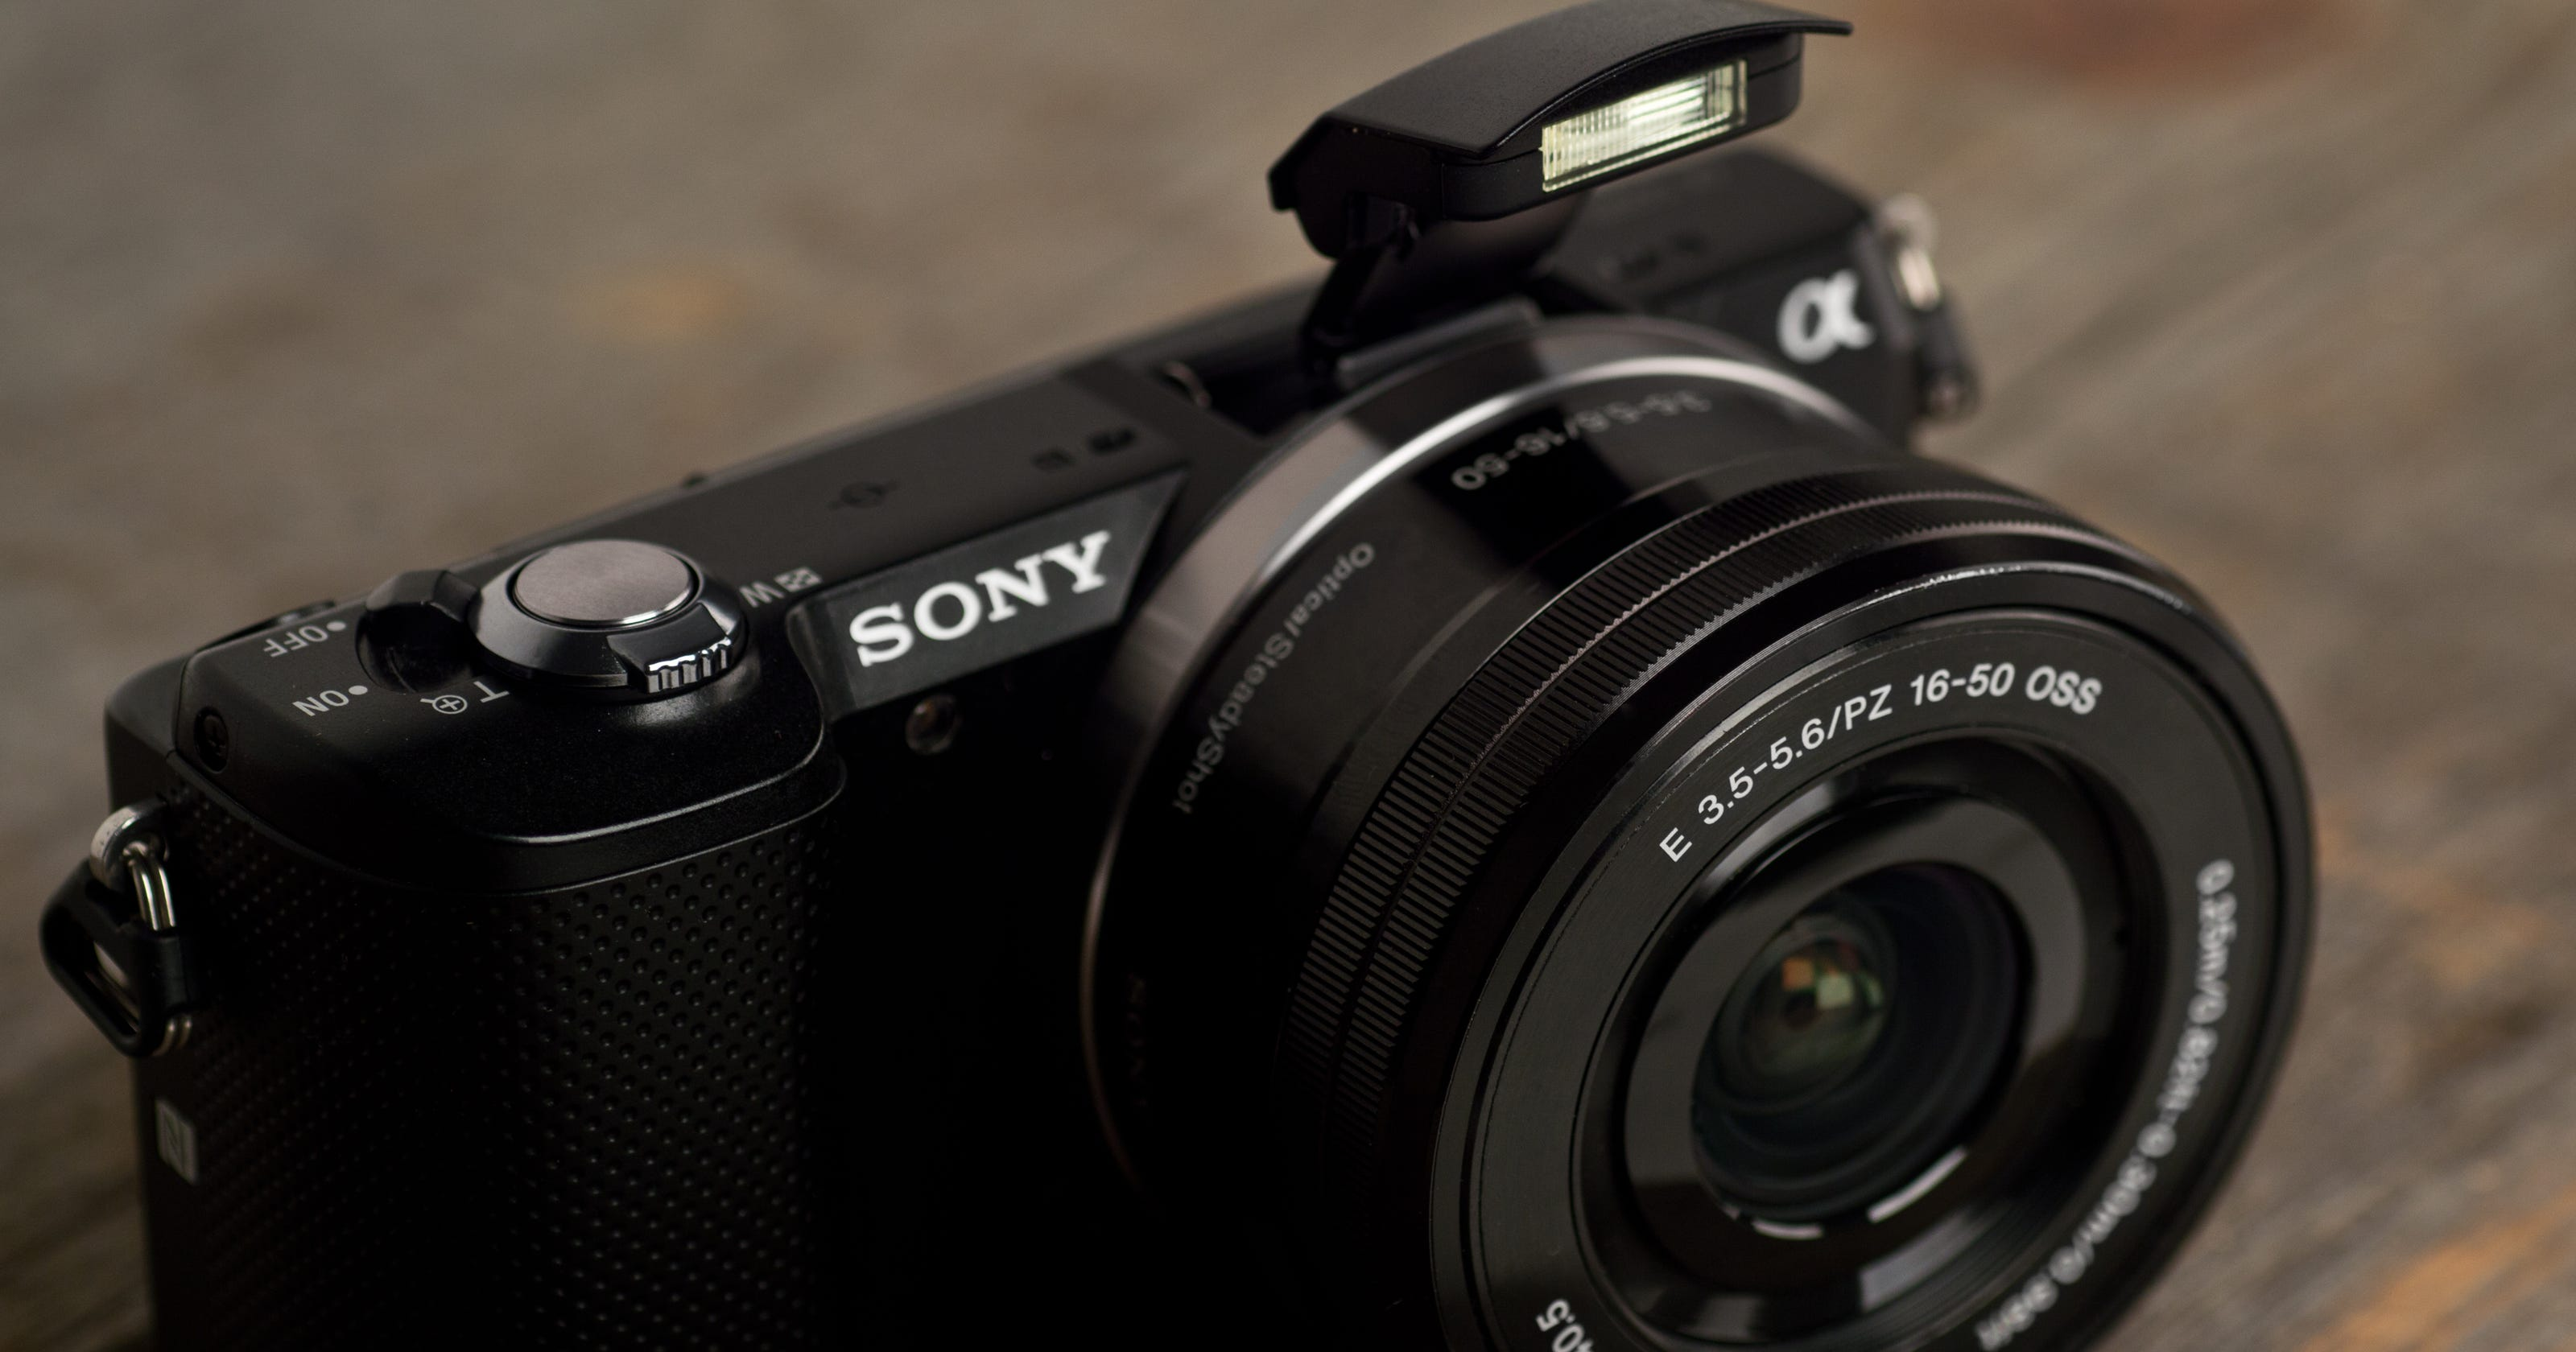 Sony's A5000 is the best sub-$500 camera around